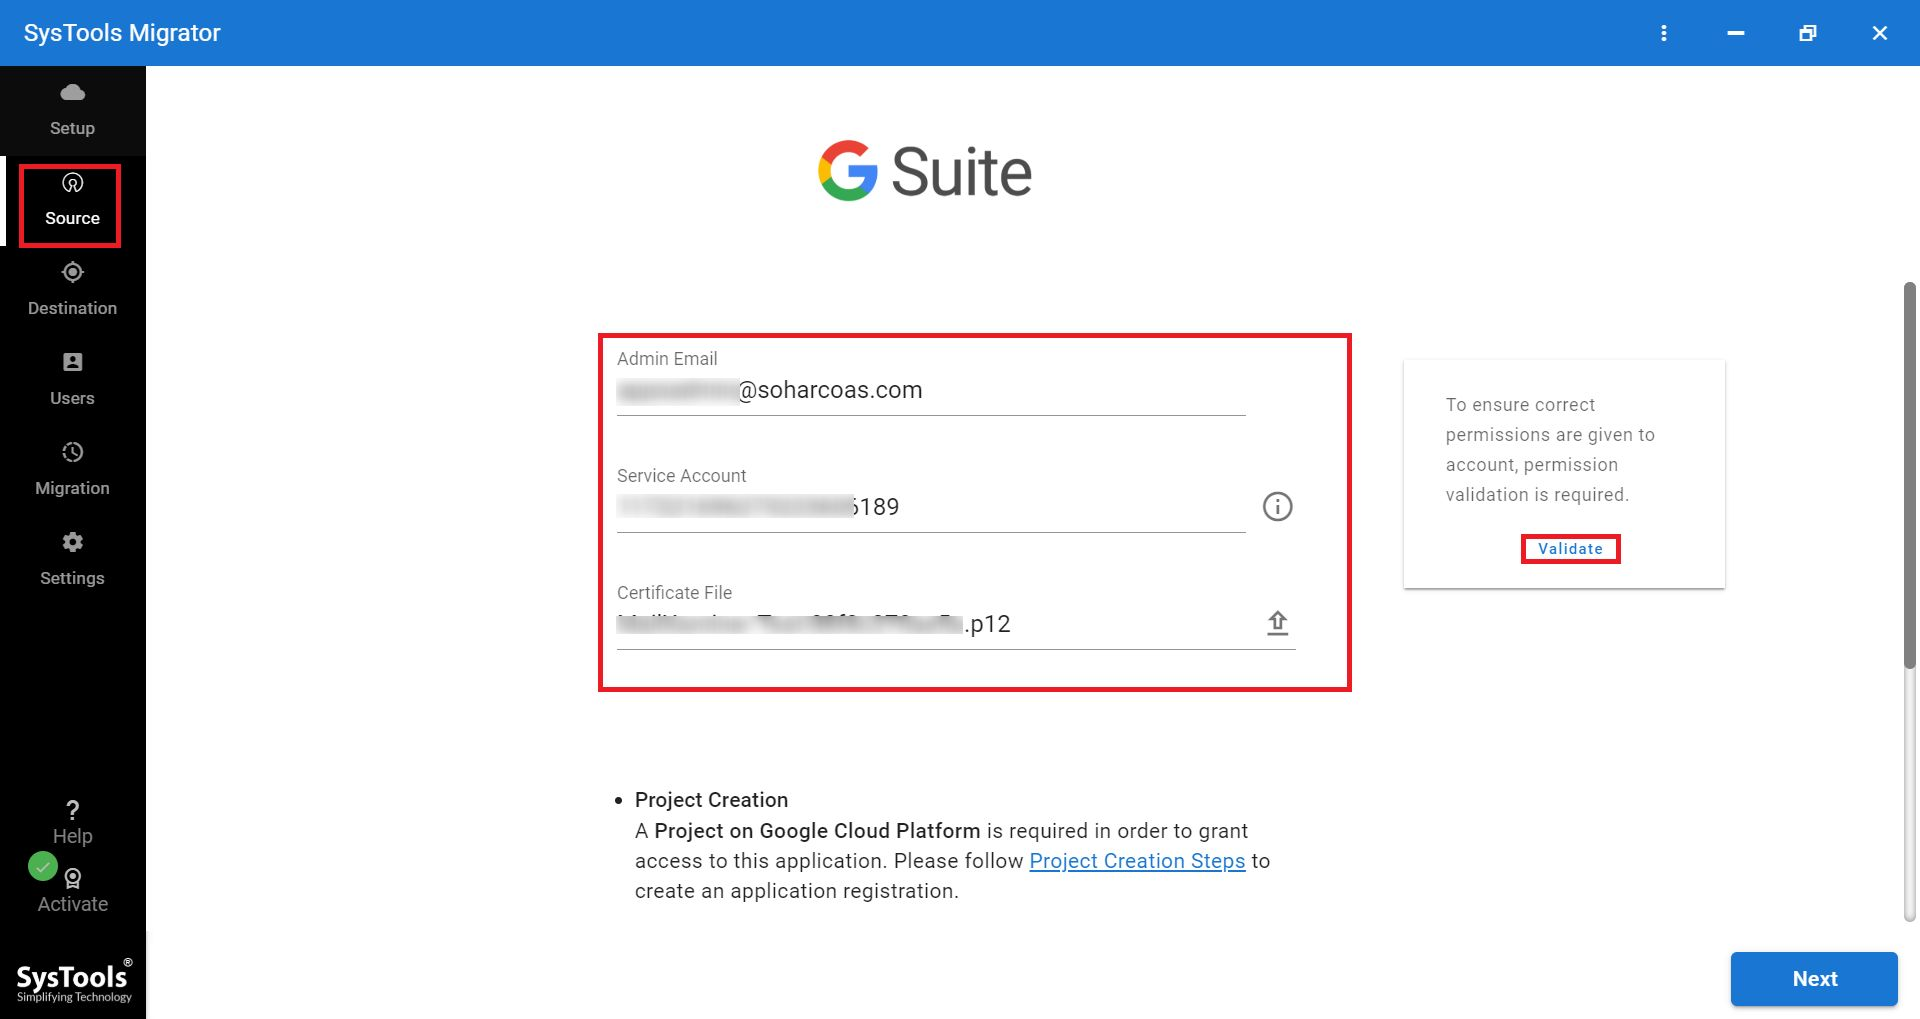 Add details for G Suite